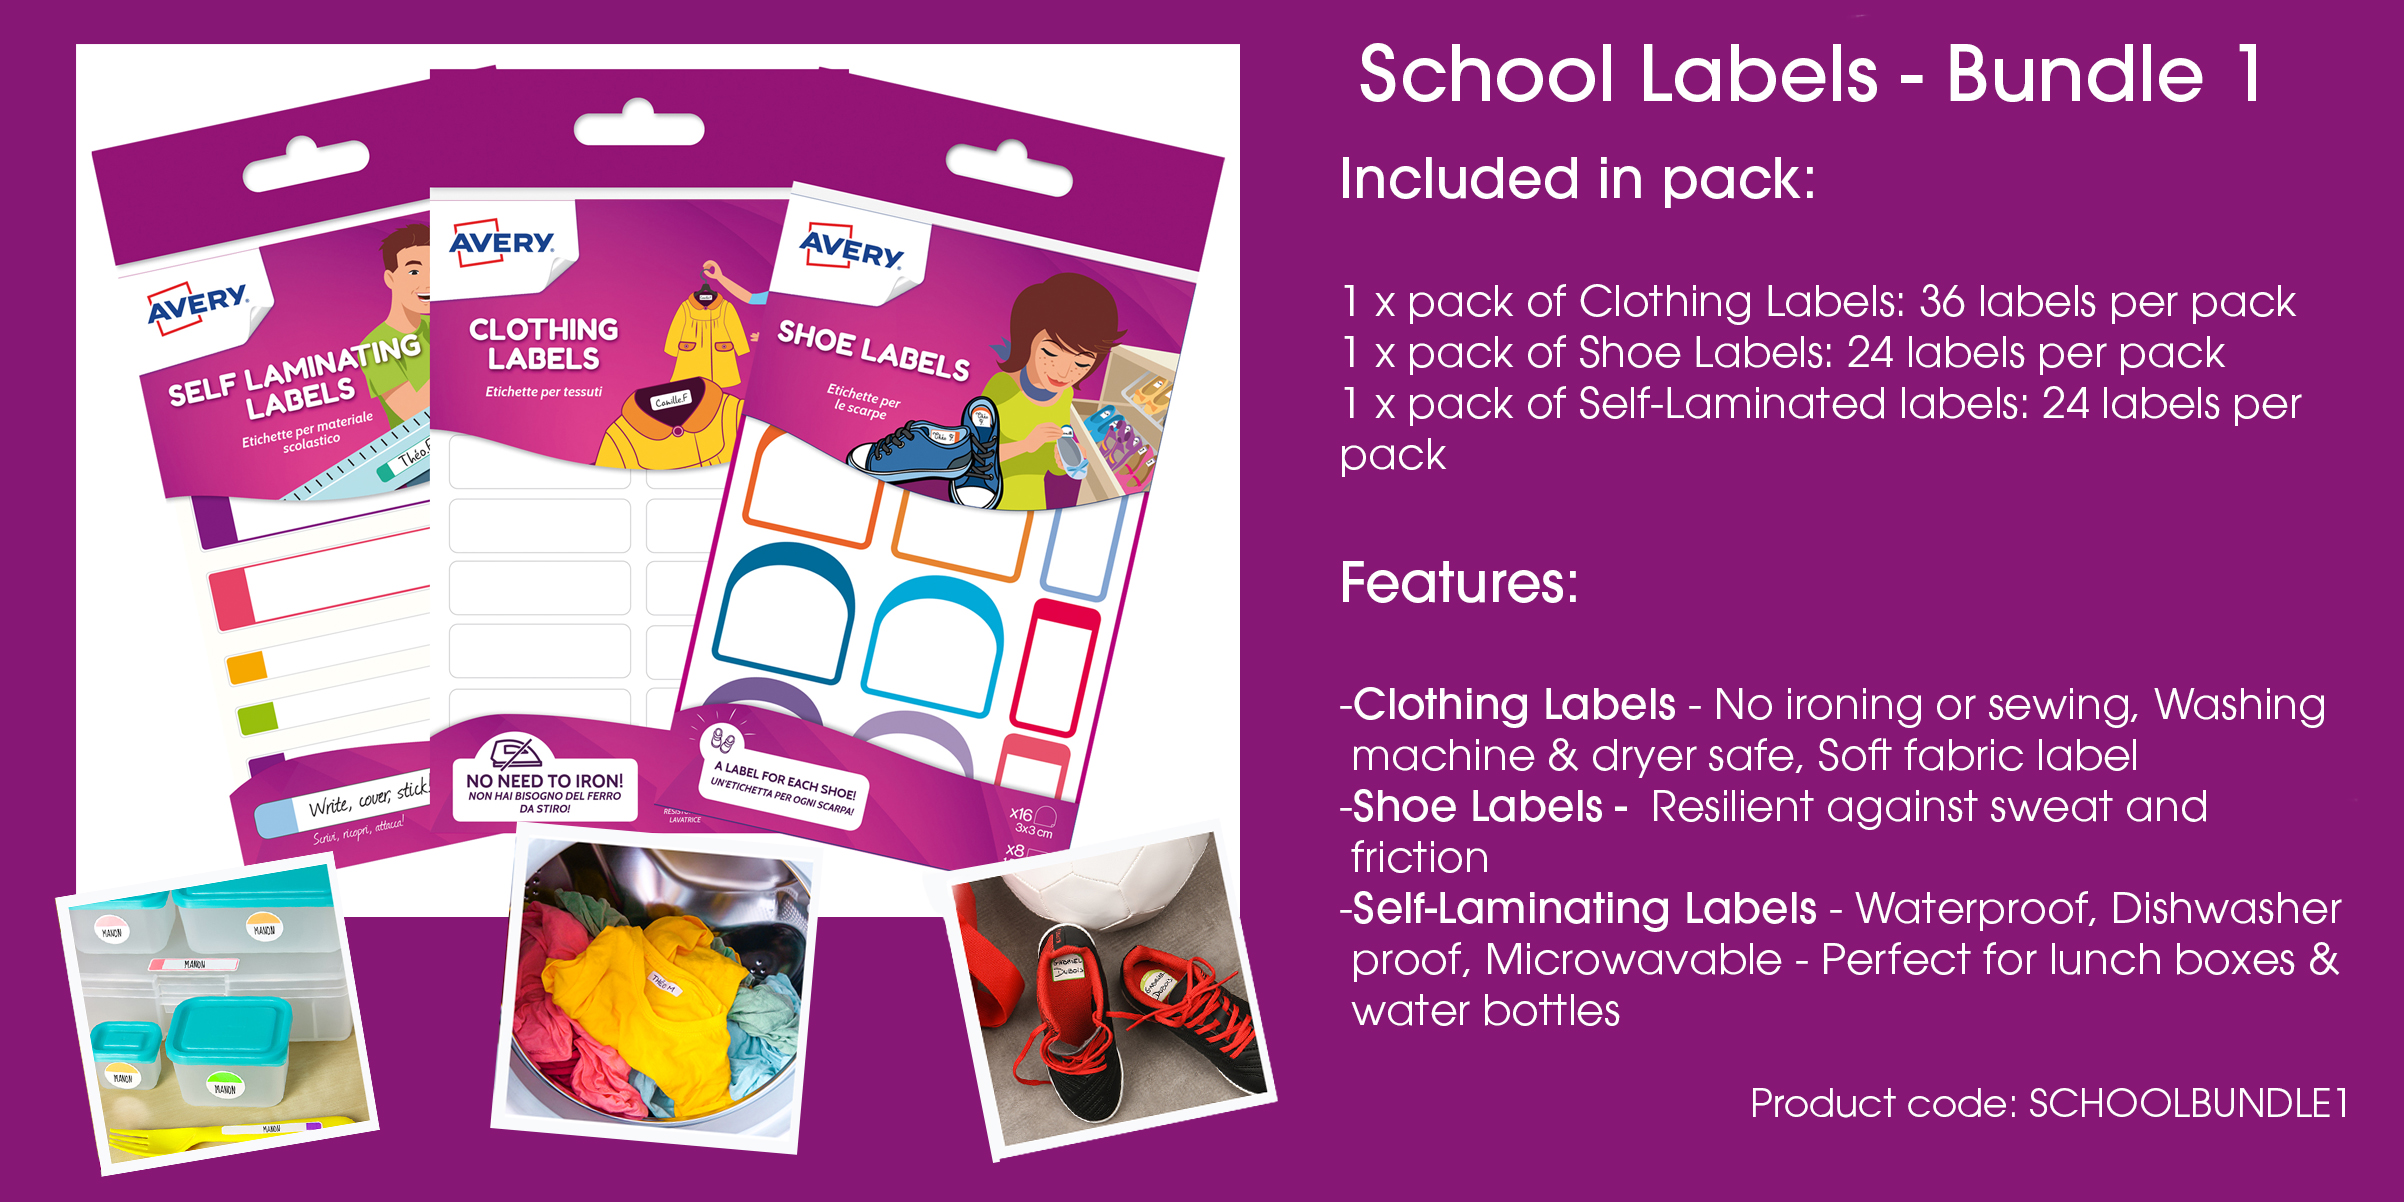 Avery School Labels - Value Pack 1